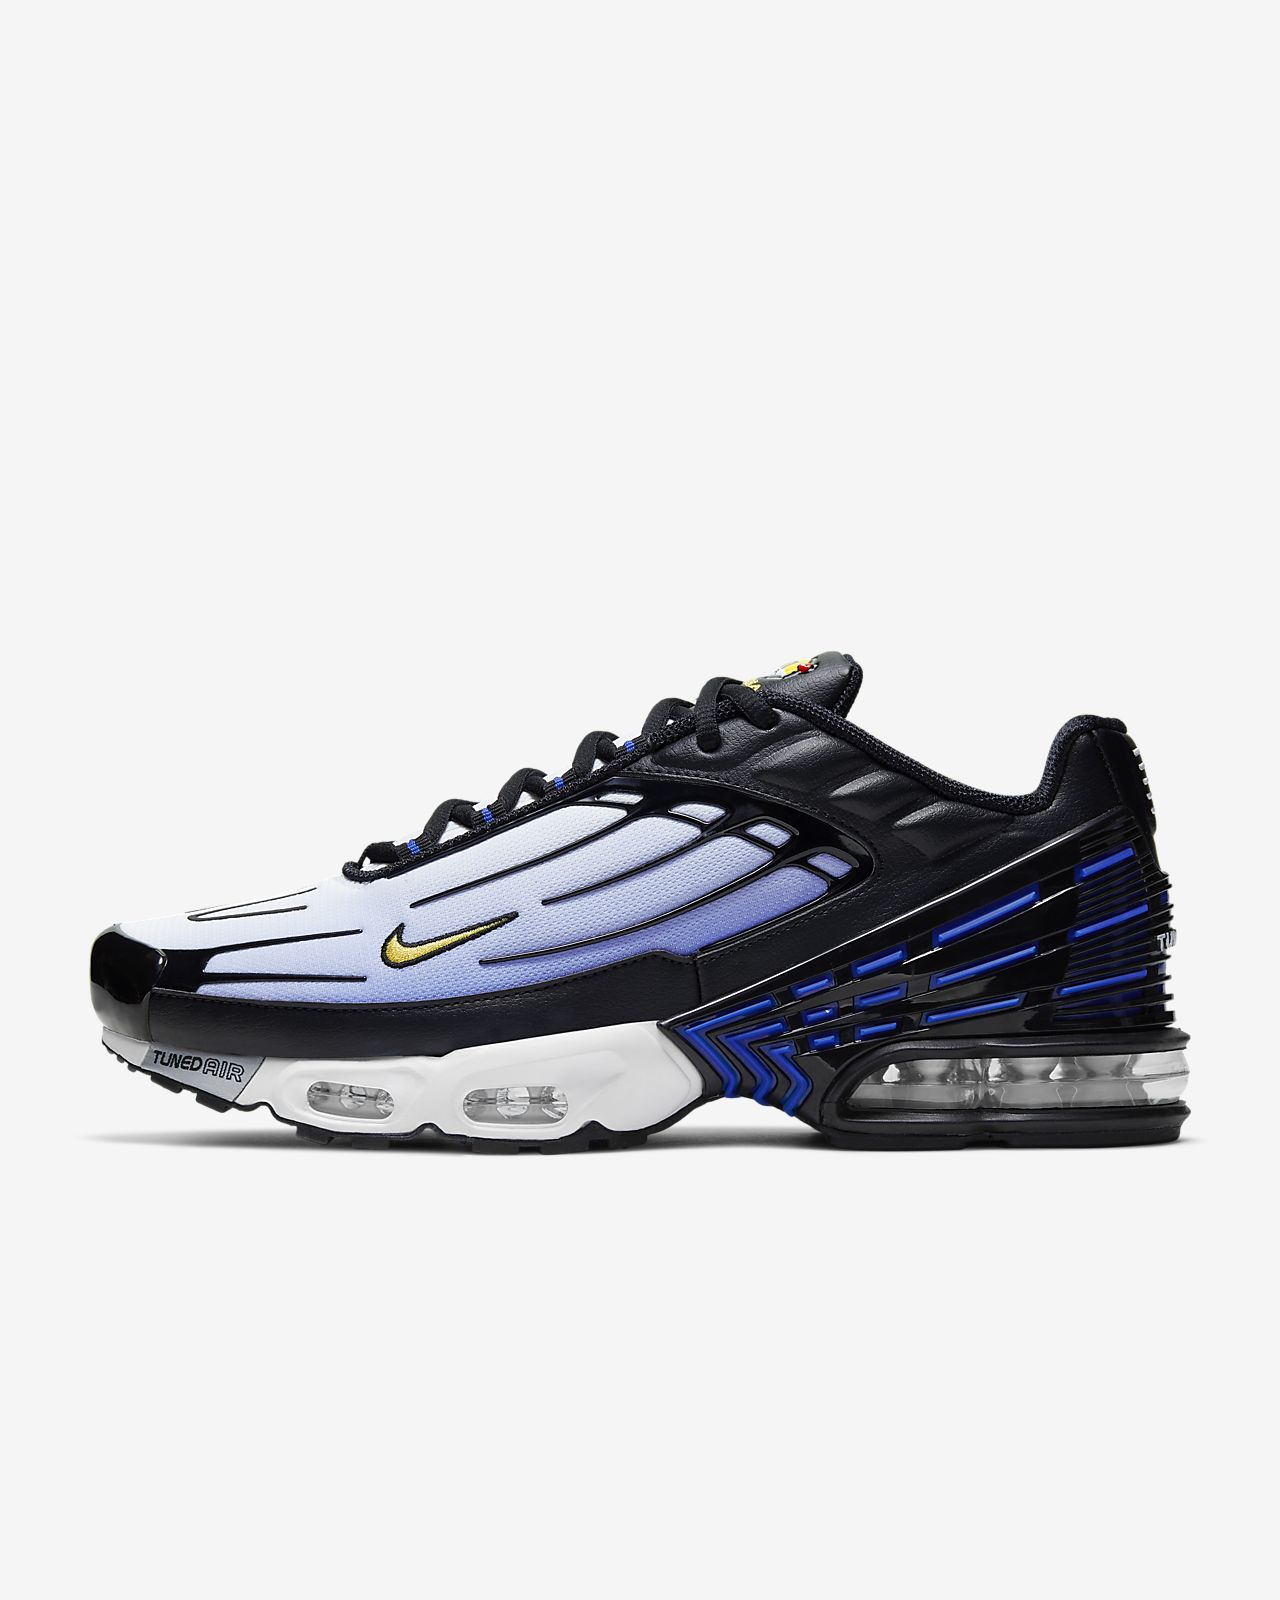 Nike Herrenschuh Iii Air Plus Max bf7Ygvy6